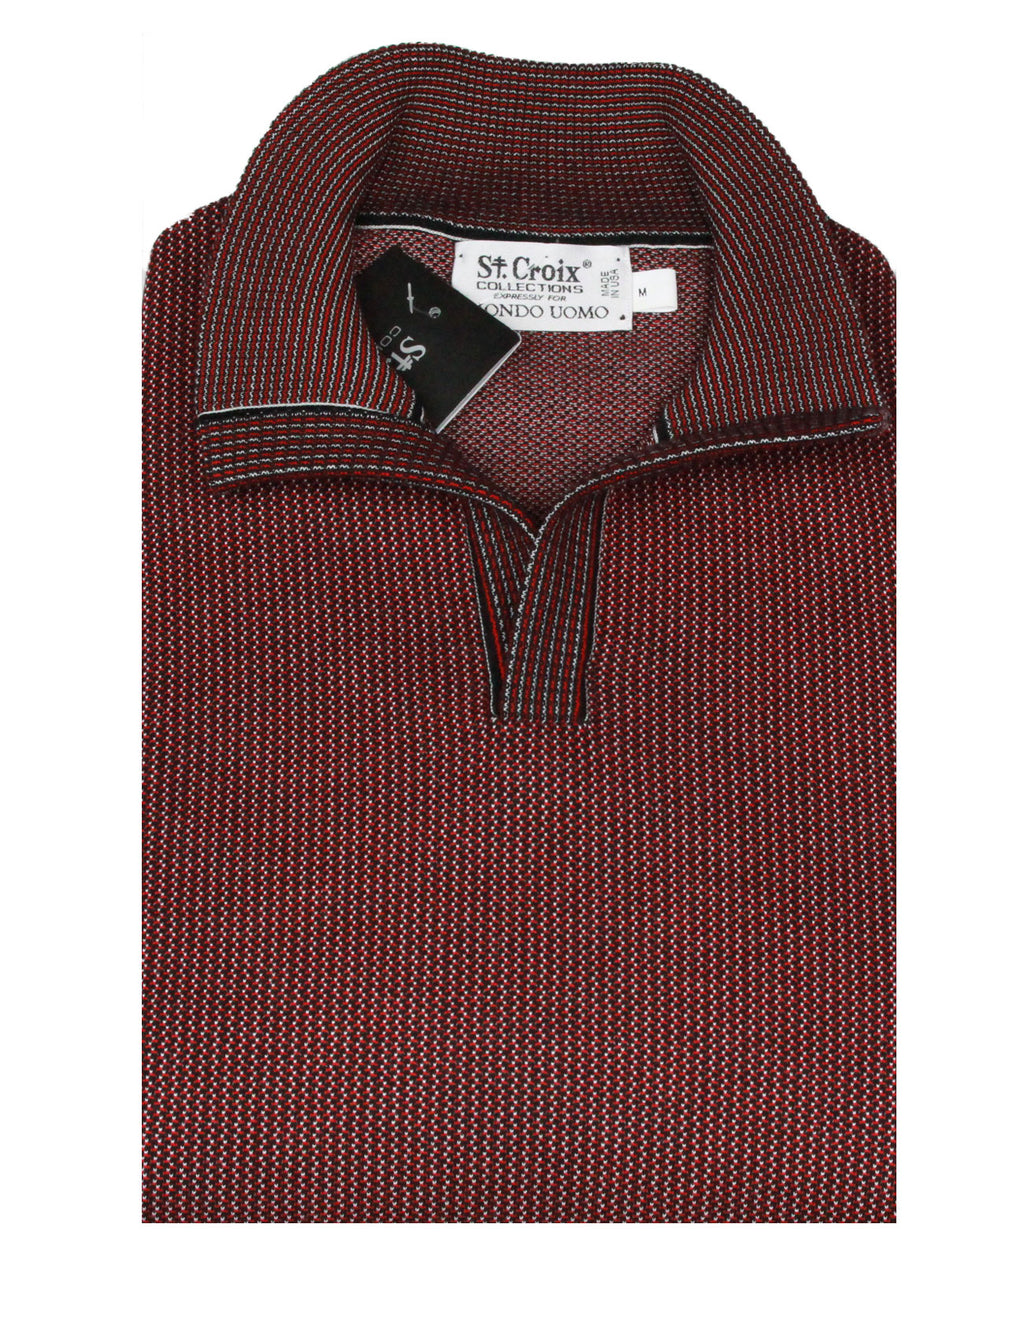 St Croix Sweater Open Mock Black- Red